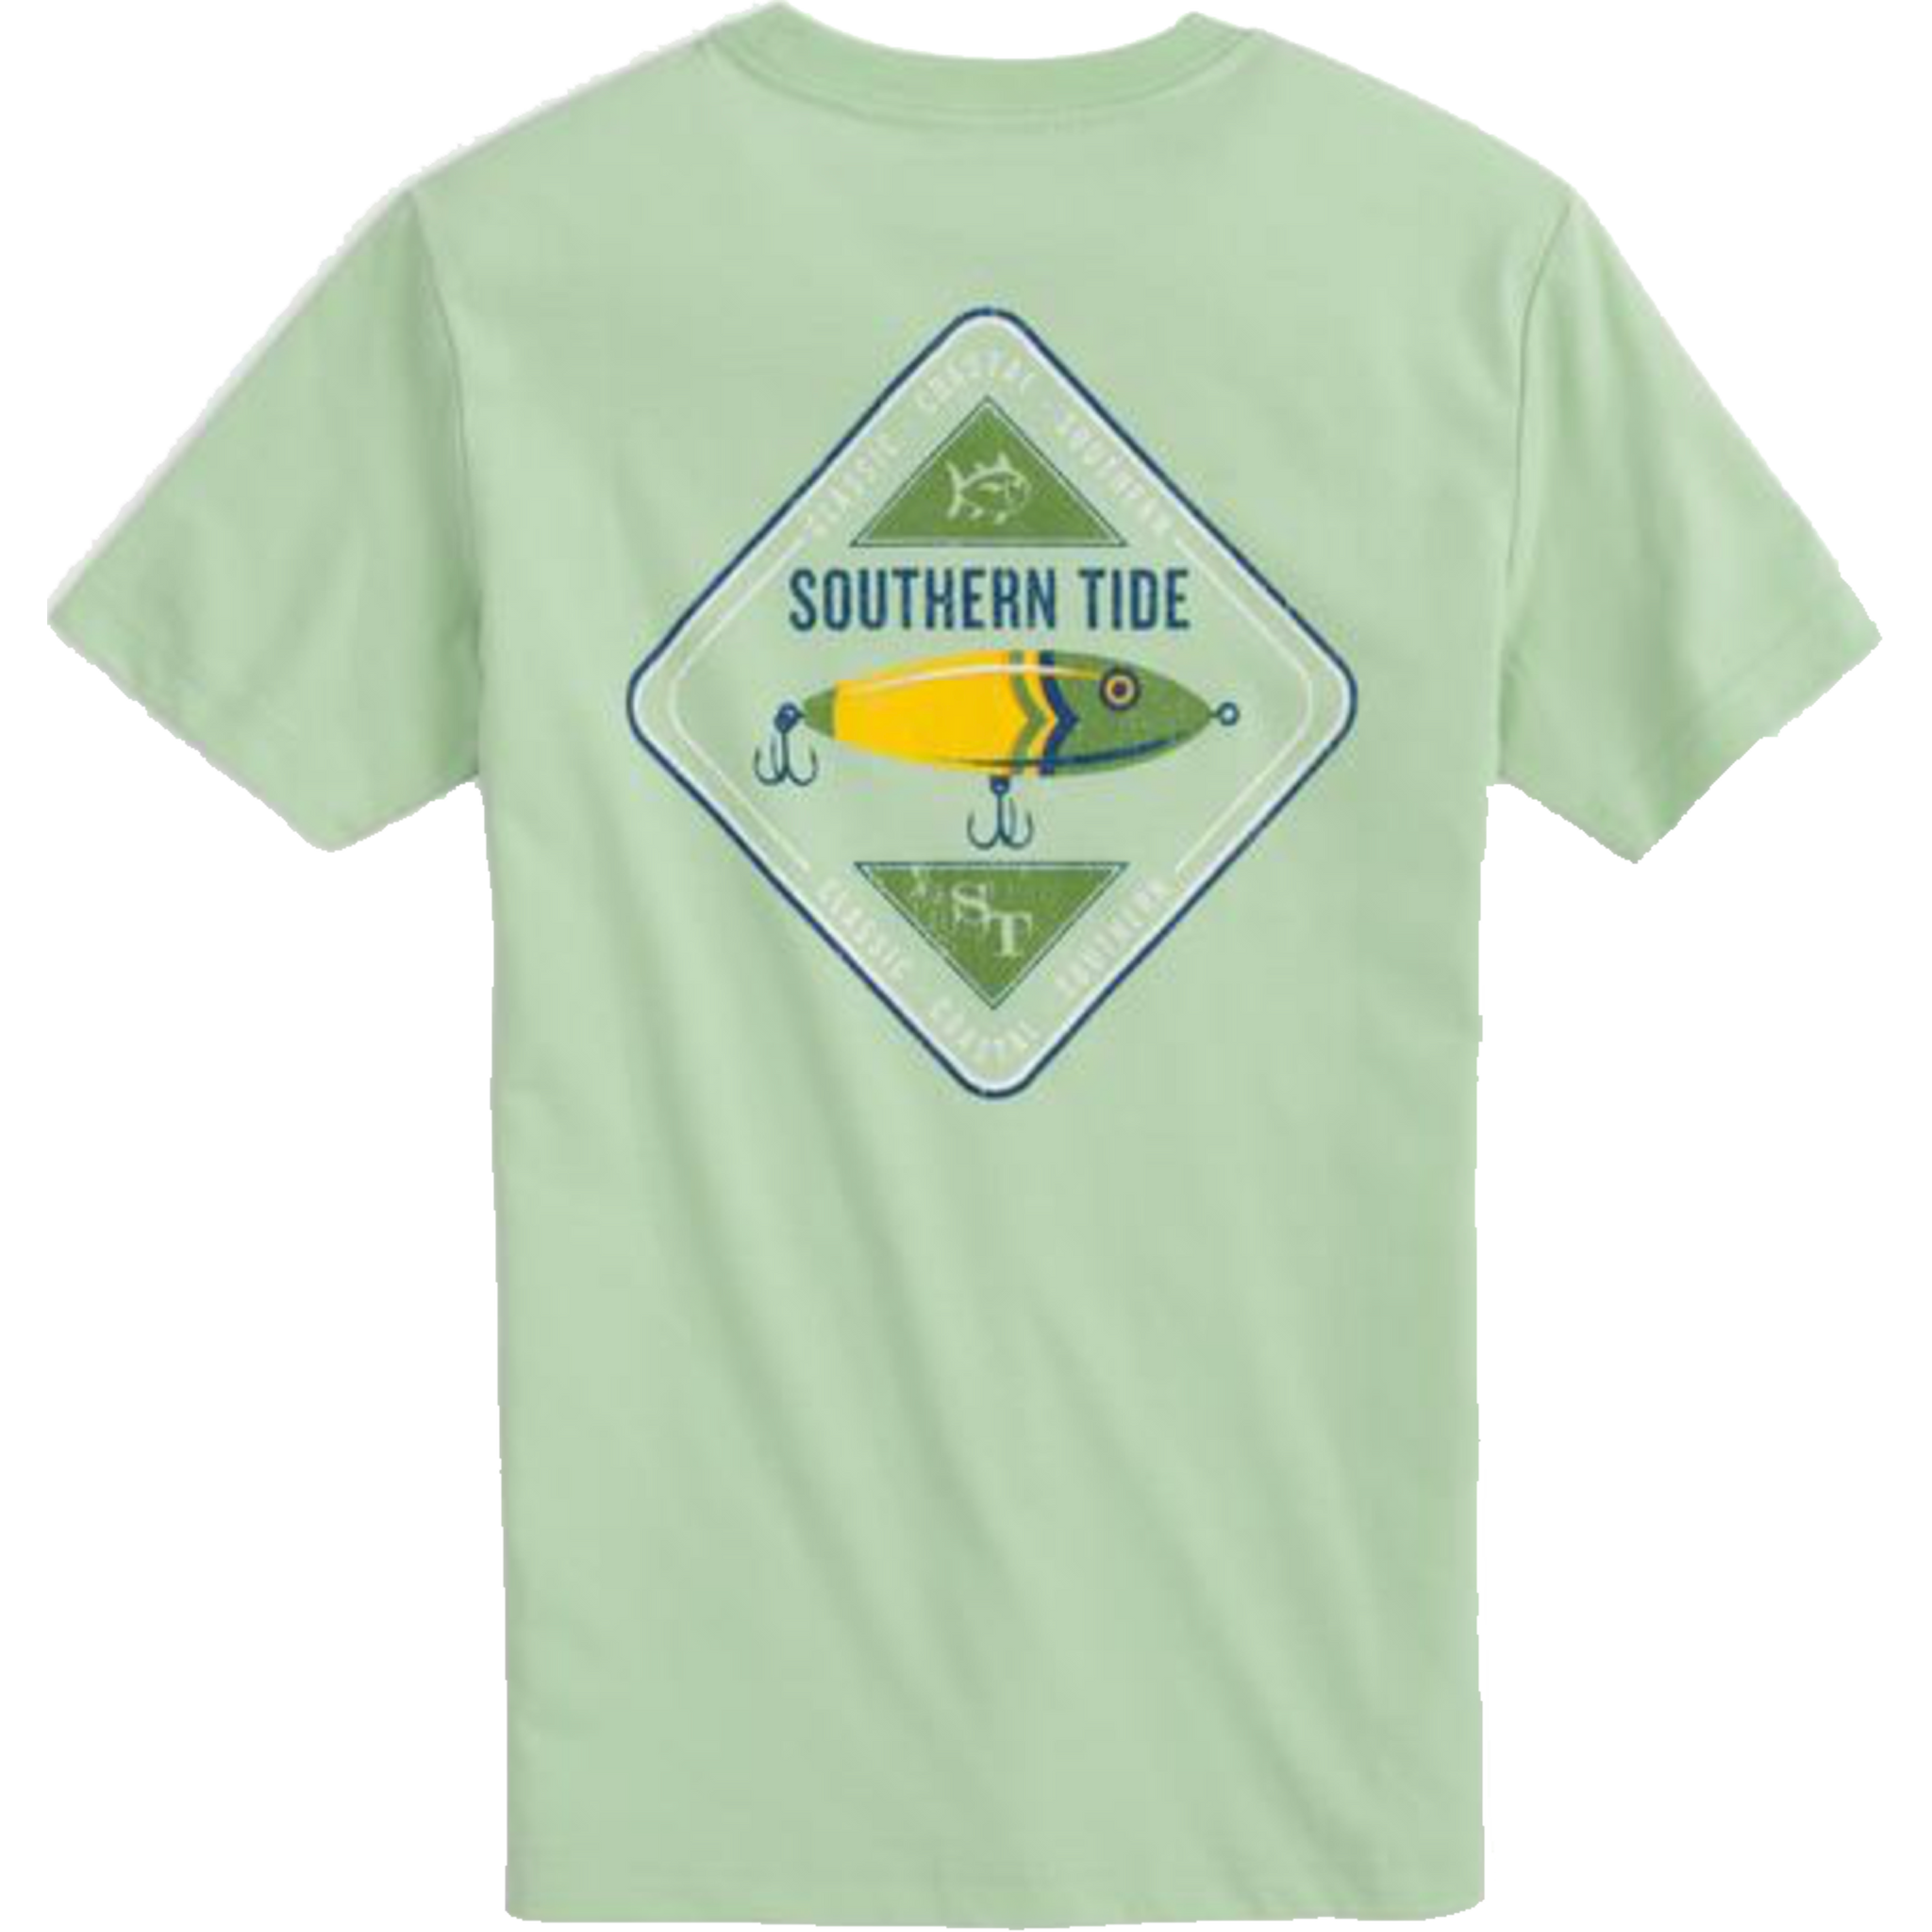 Southern Tide Boys Southern Tide Lure Tee - Garden Grove